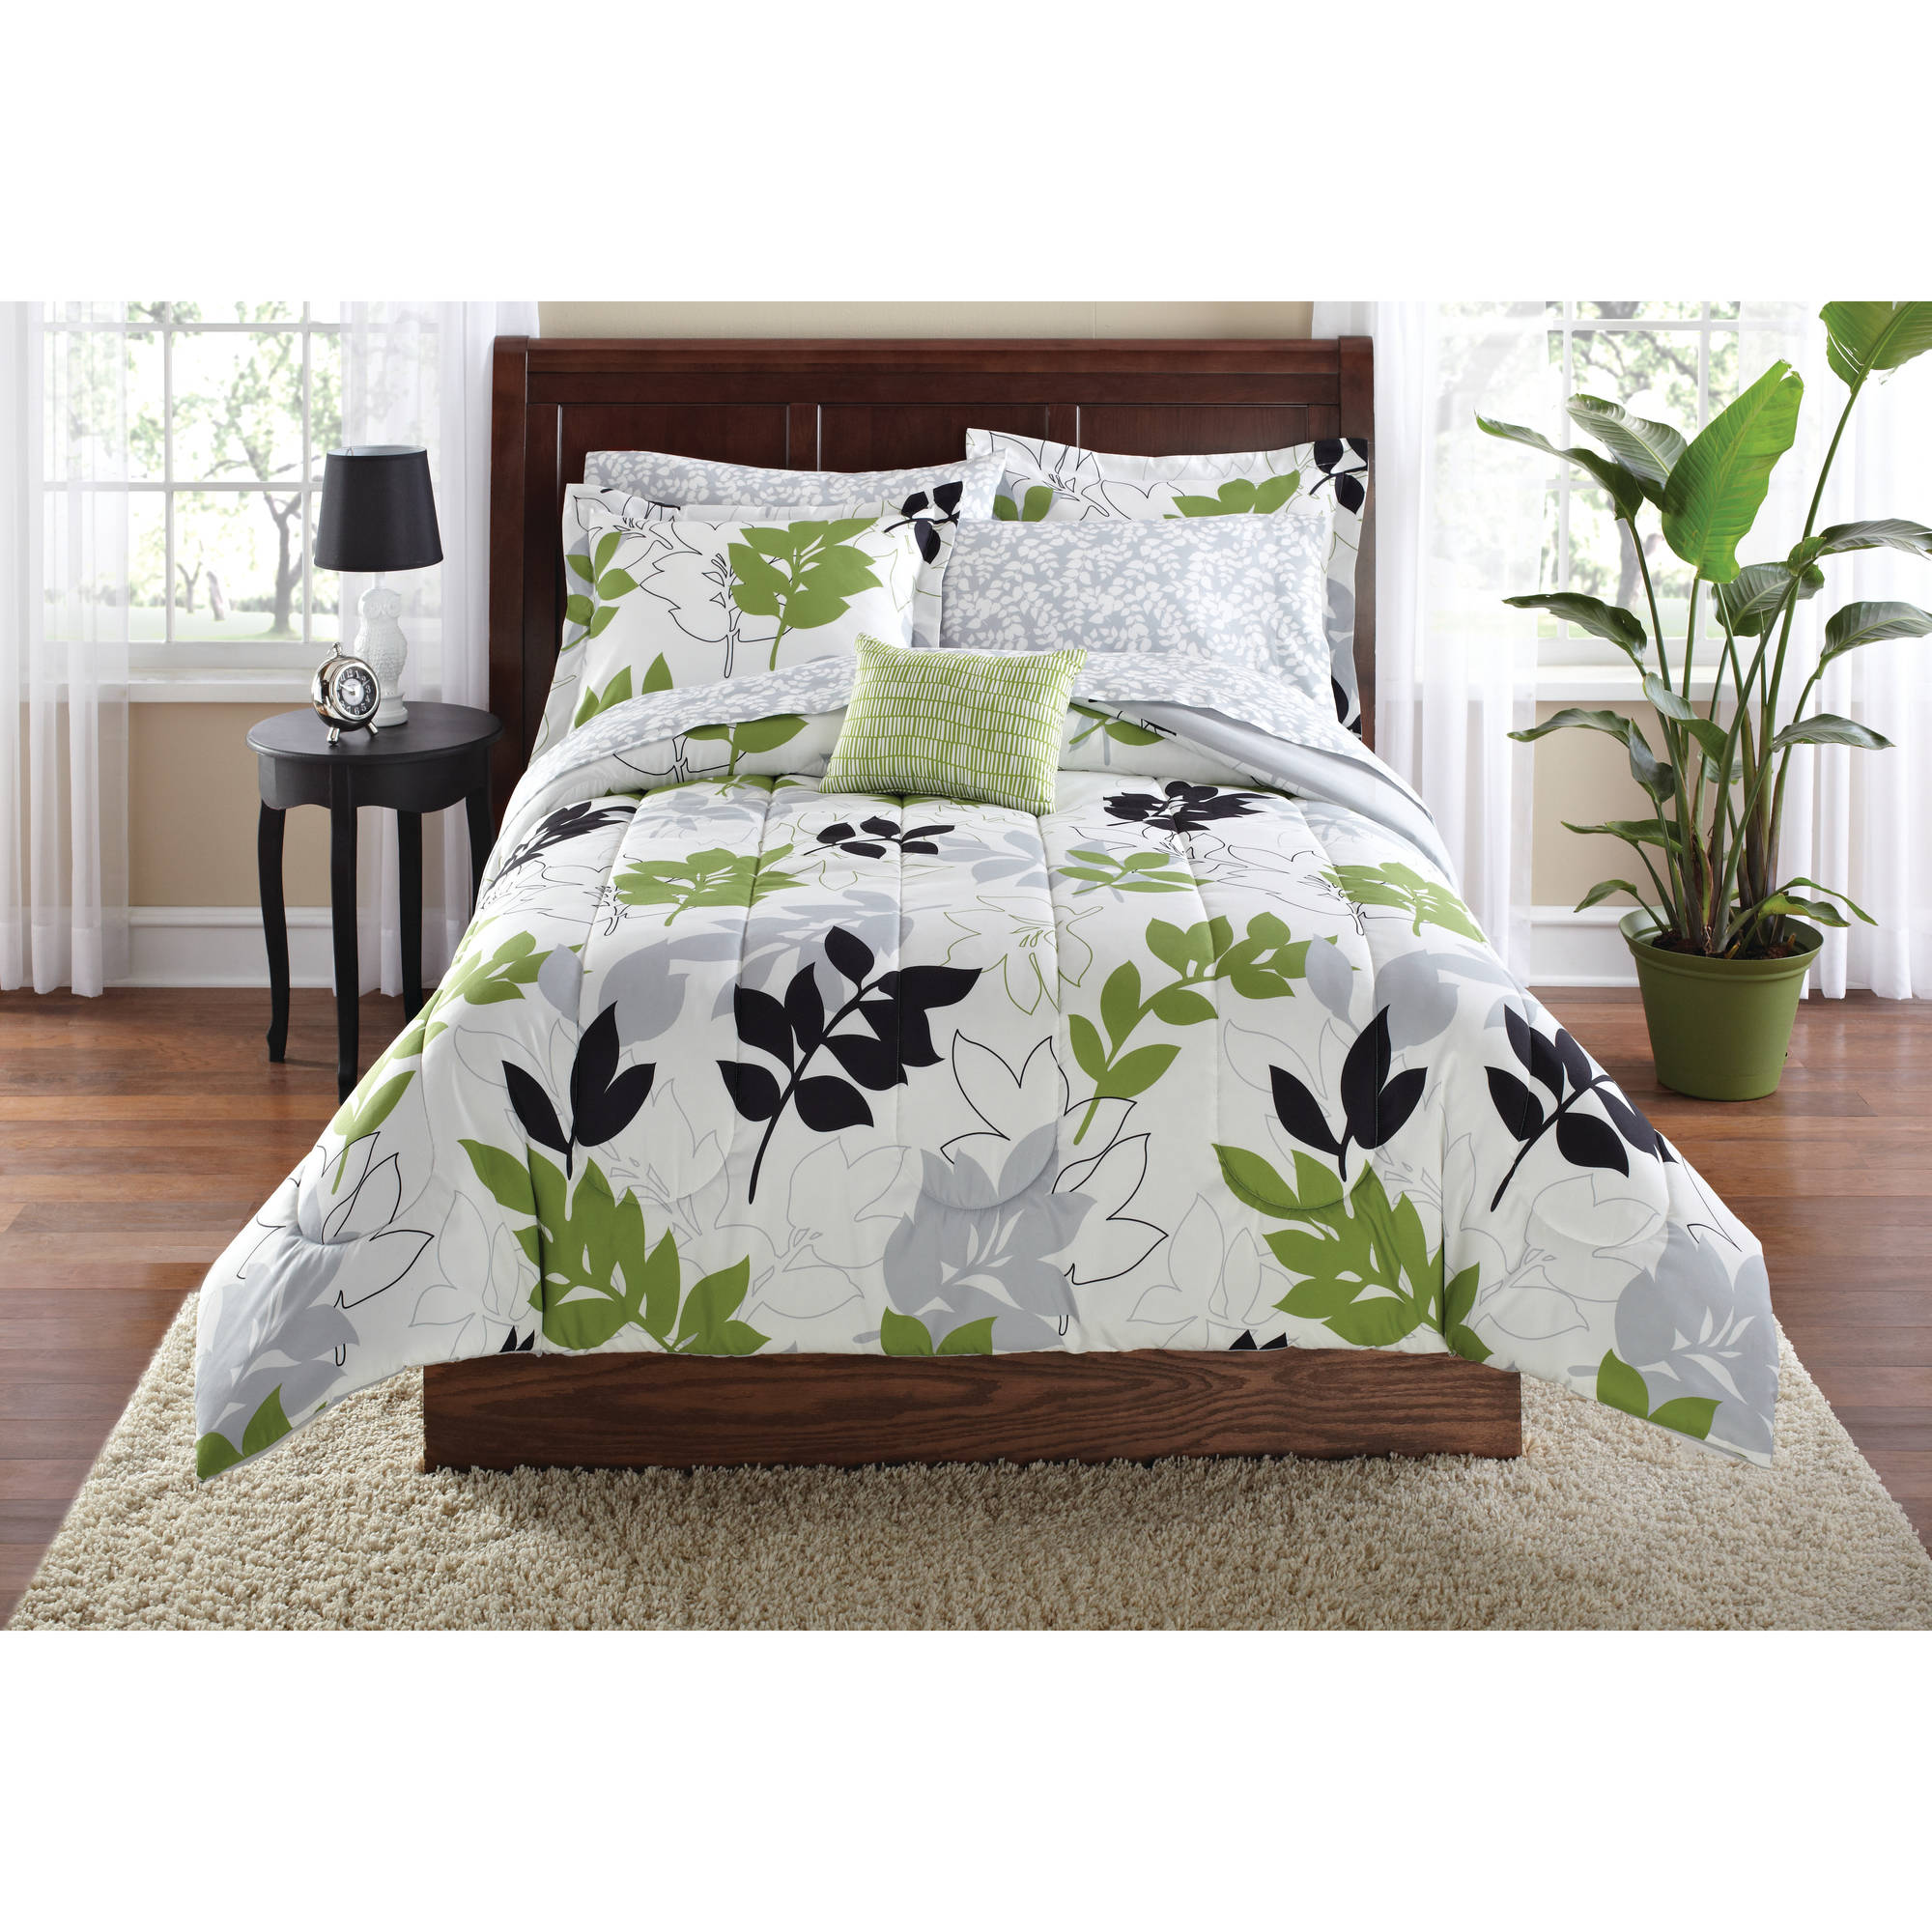 mainstays botanical leaf bed in a bag coordinated bedding set walmartcom